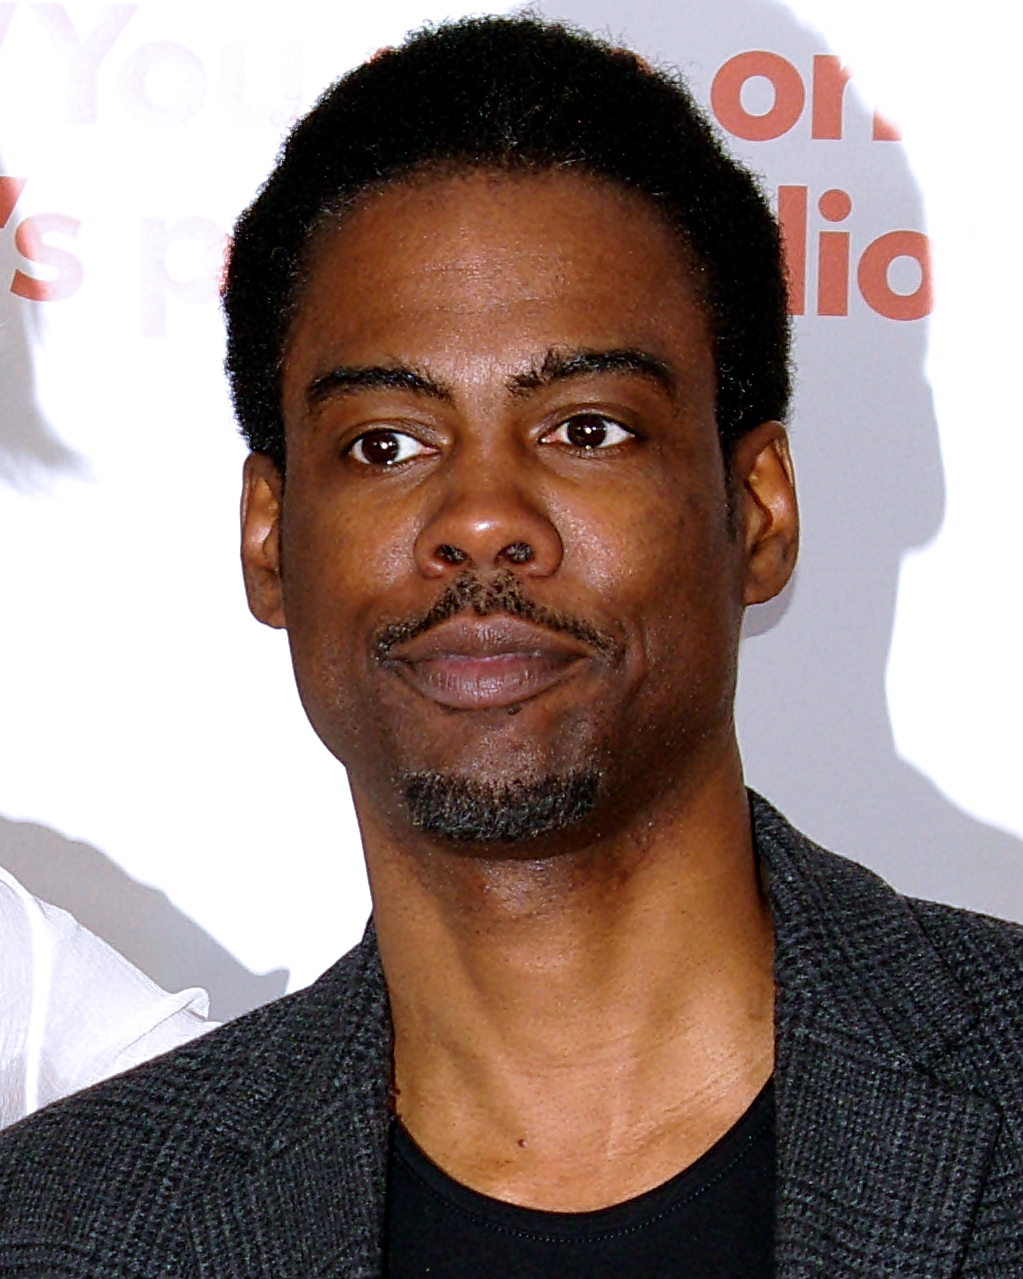 File:Chris Rock WE 2012 Shankbone 10.JPG - Wikimedia Commons